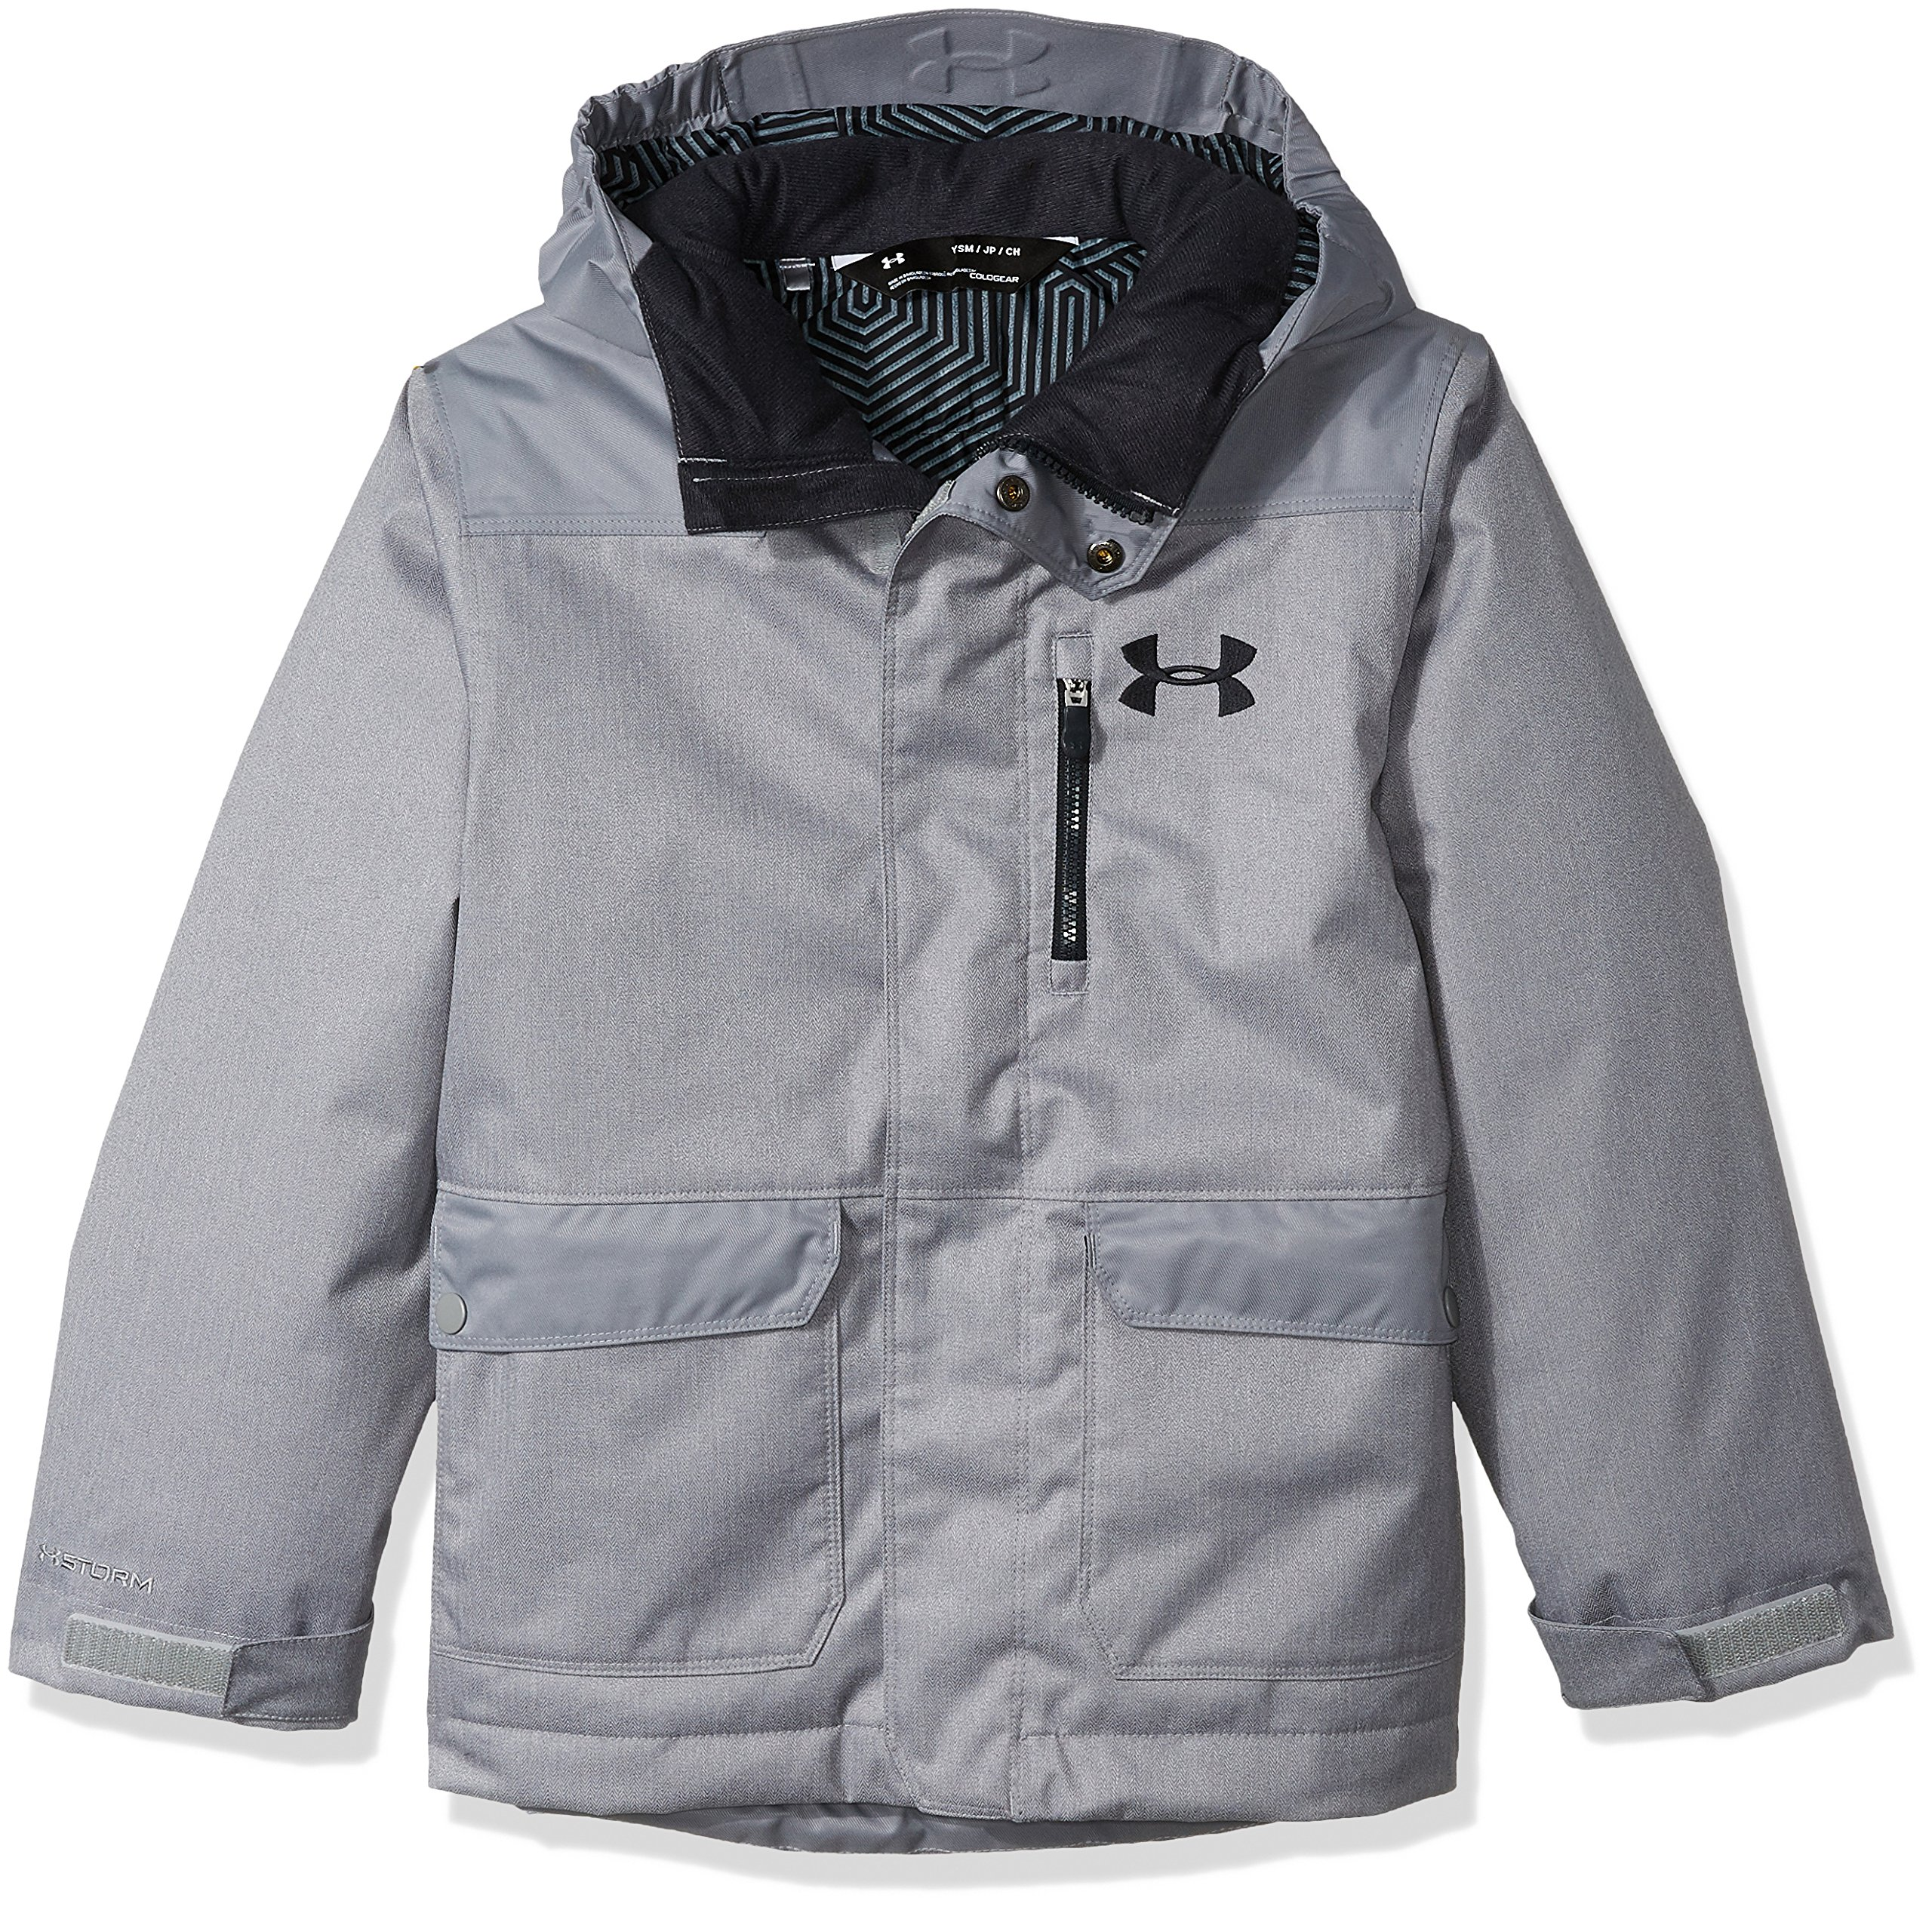 Under Armour Boys' ColdGear Reactor Yonders Parka, Steel/Anthracite, Youth Small by Under Armour